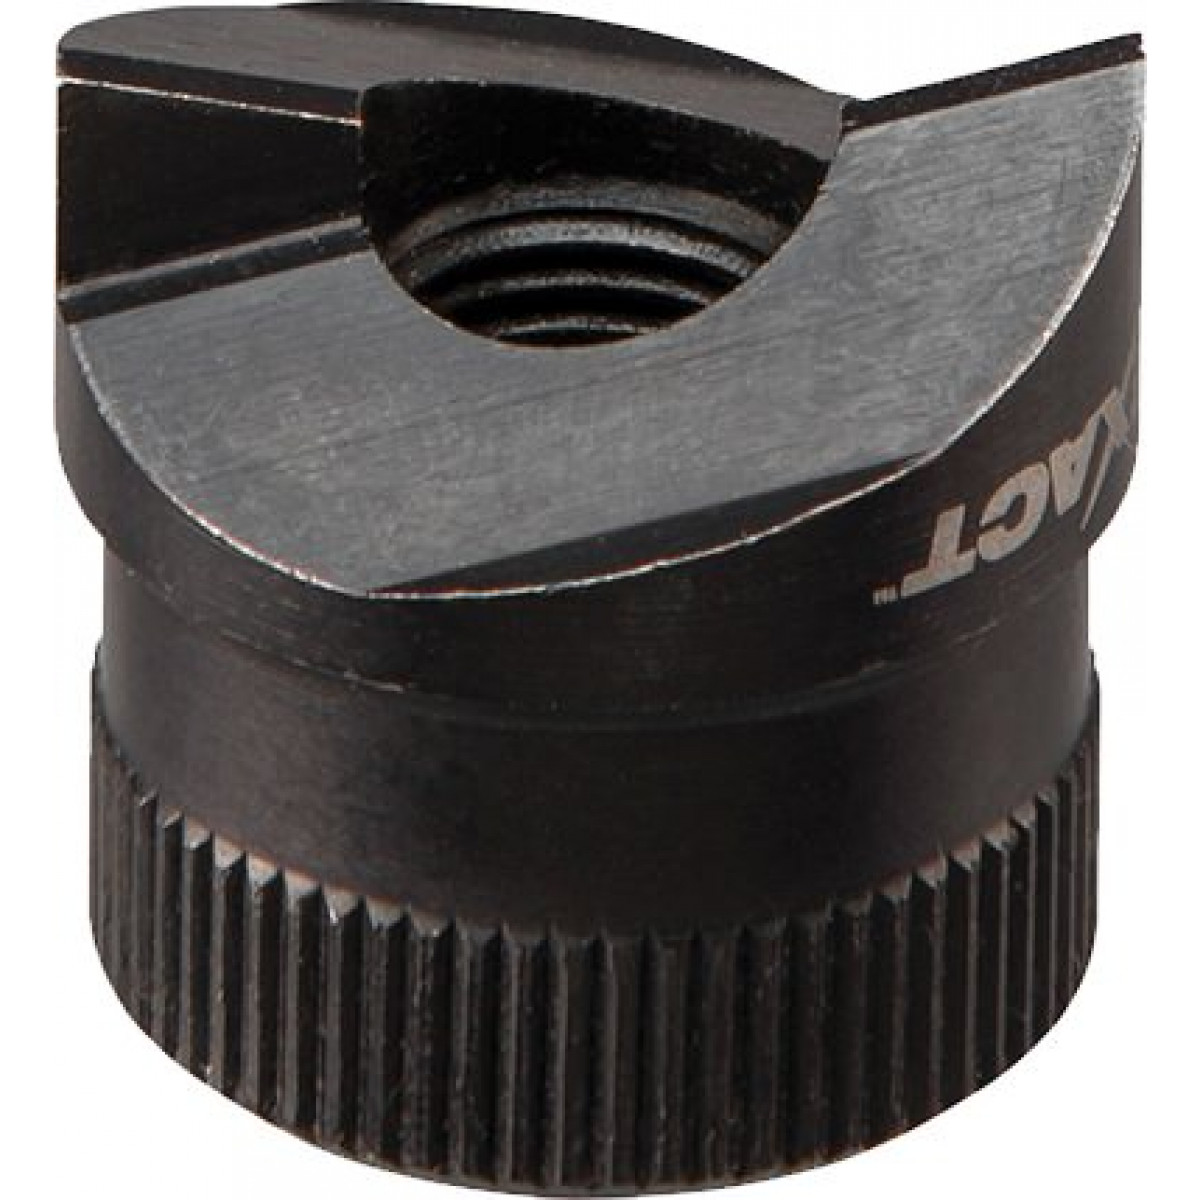 Milwaukee® EXACT™ 49-16-2661 Knockout Punch, 7/8 in D Cutting, 1/2 in Conduit/Pipe